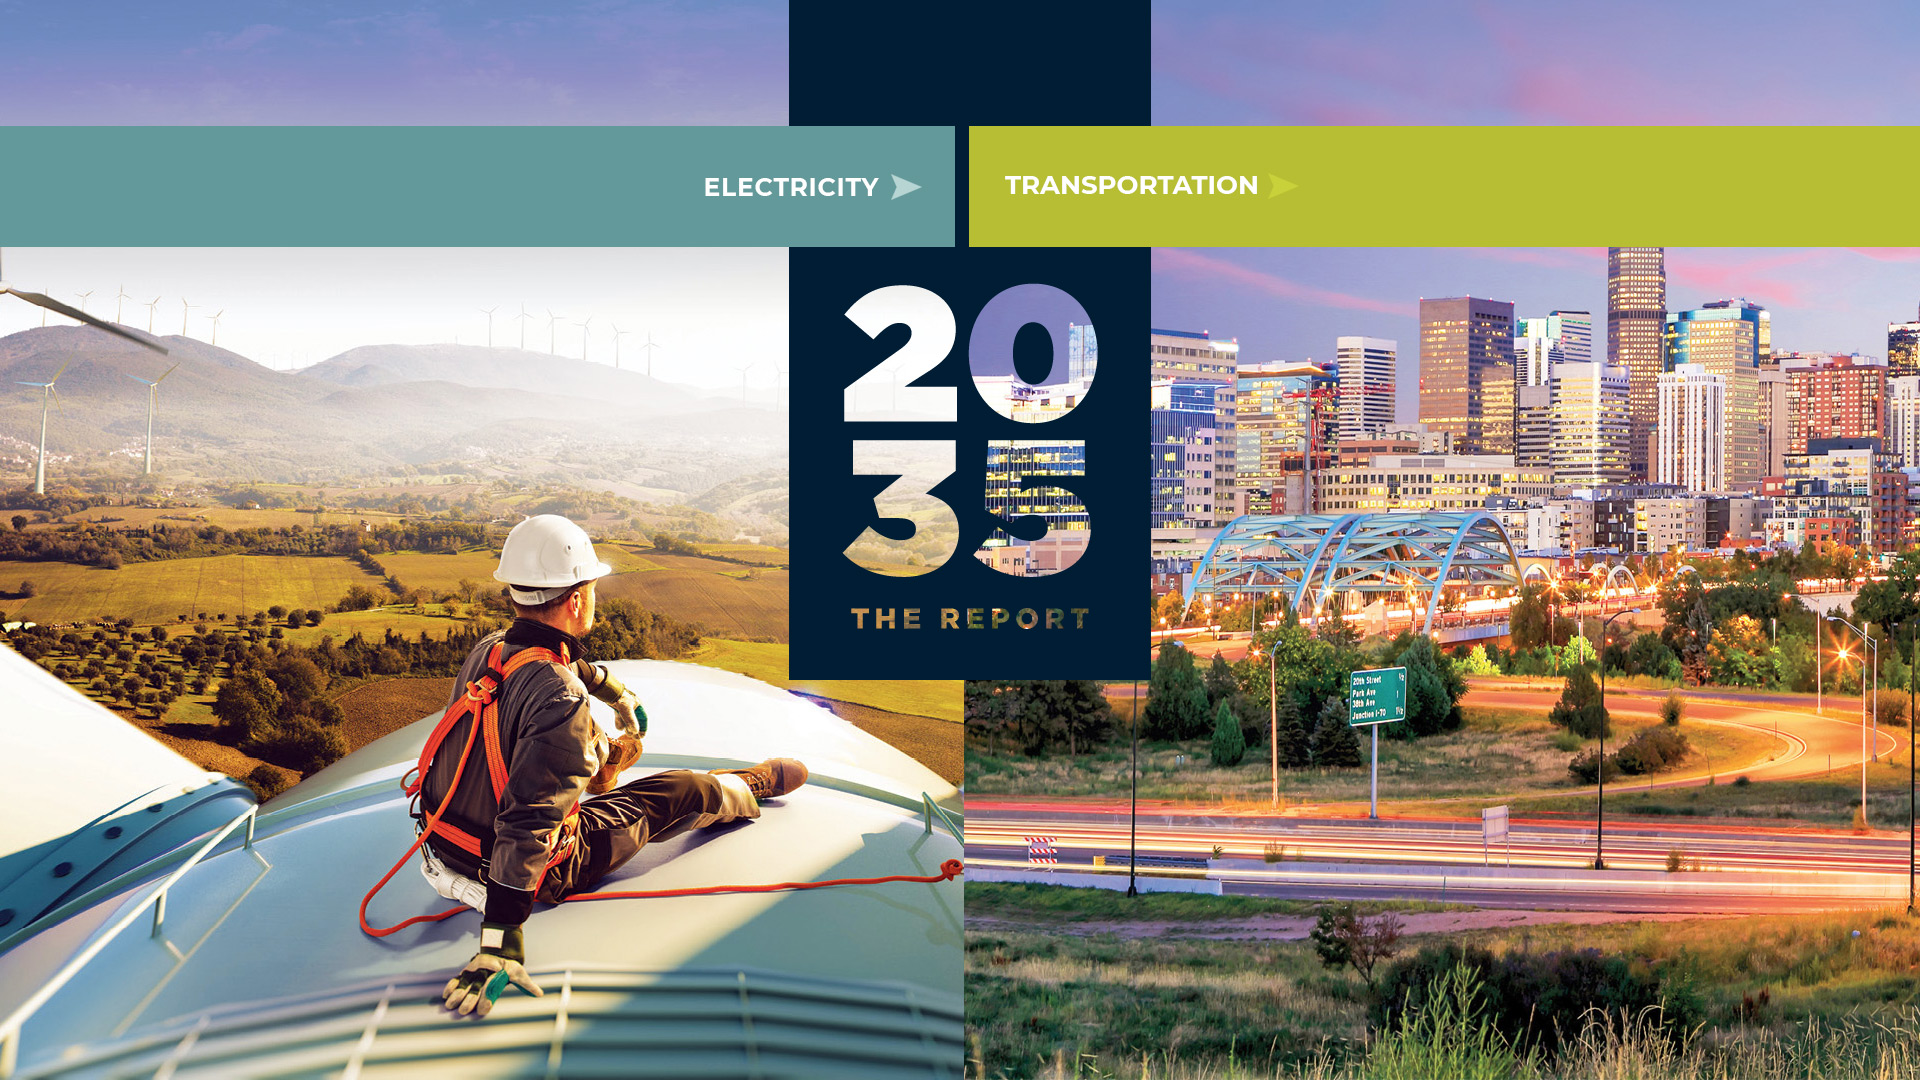 2035 Report Electricity and Transportation